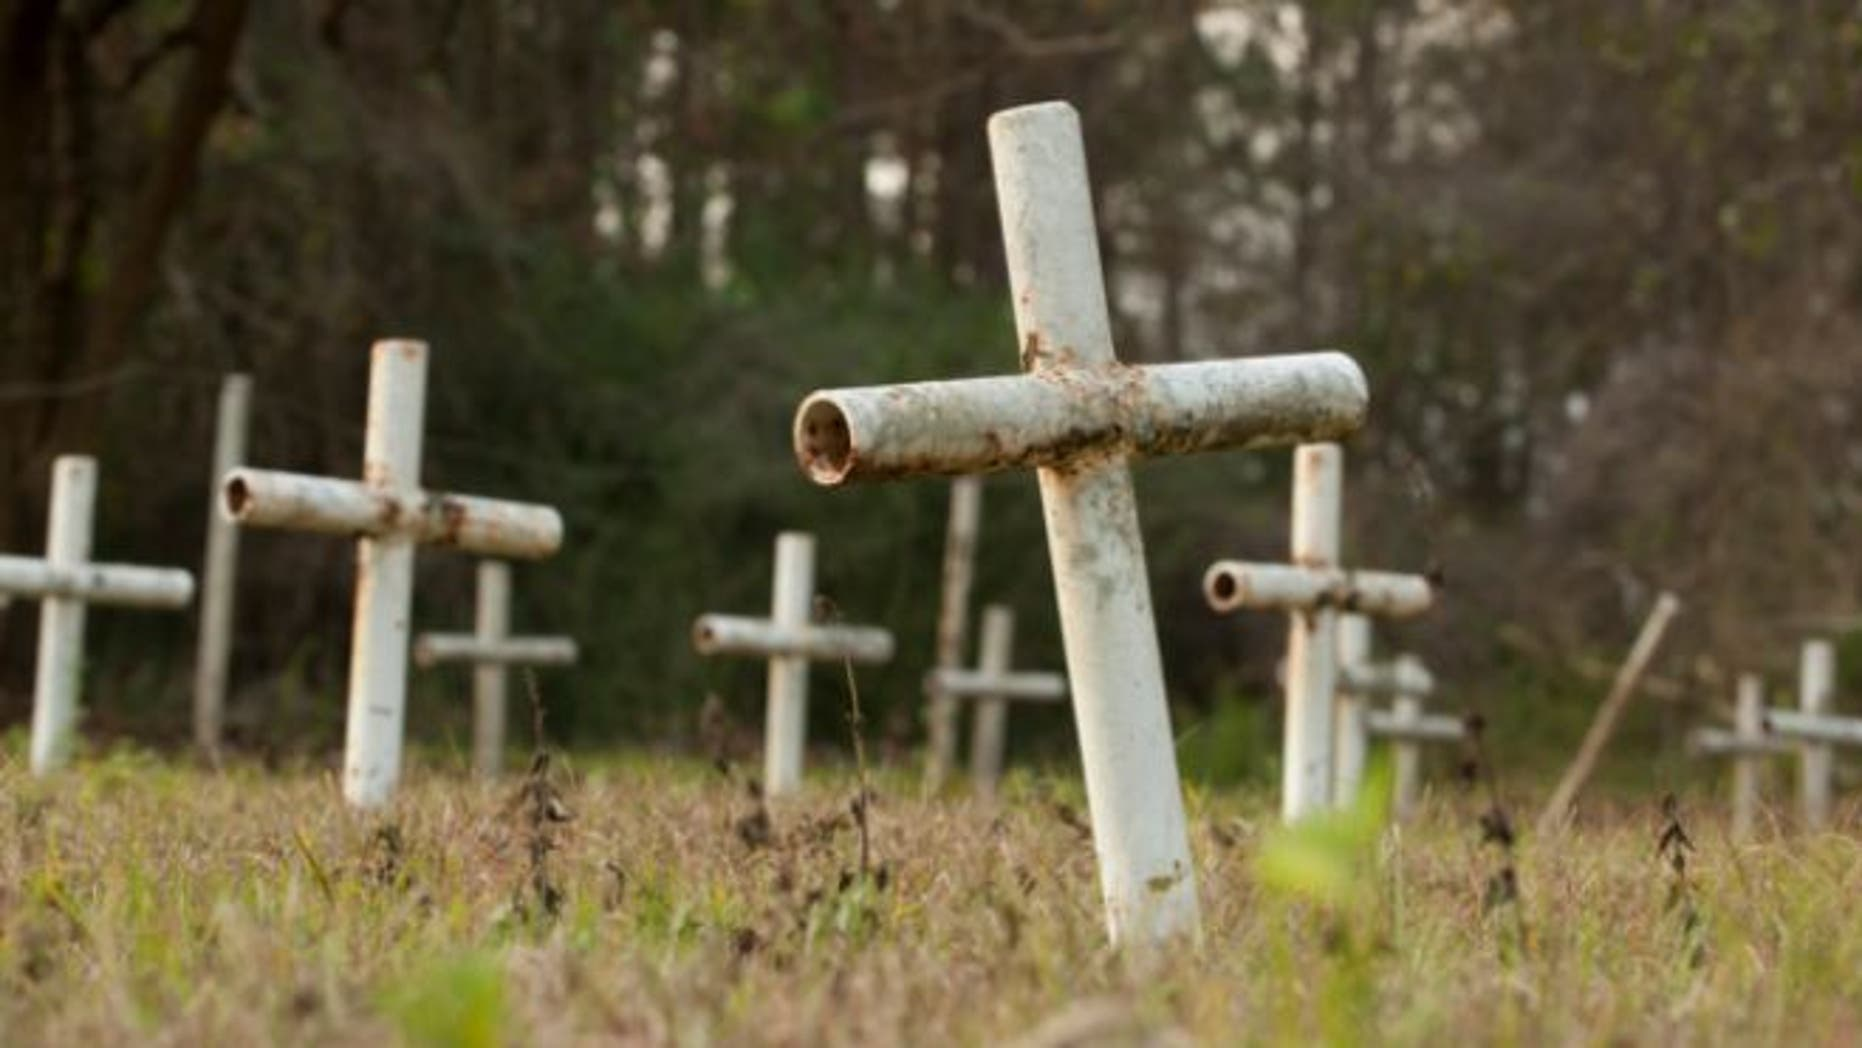 FILE: Dec. 10, 2012: White metal crosses mark graves at the cemetery of the former Arthur G. Dozier School for Boys in Marianna, Florida.